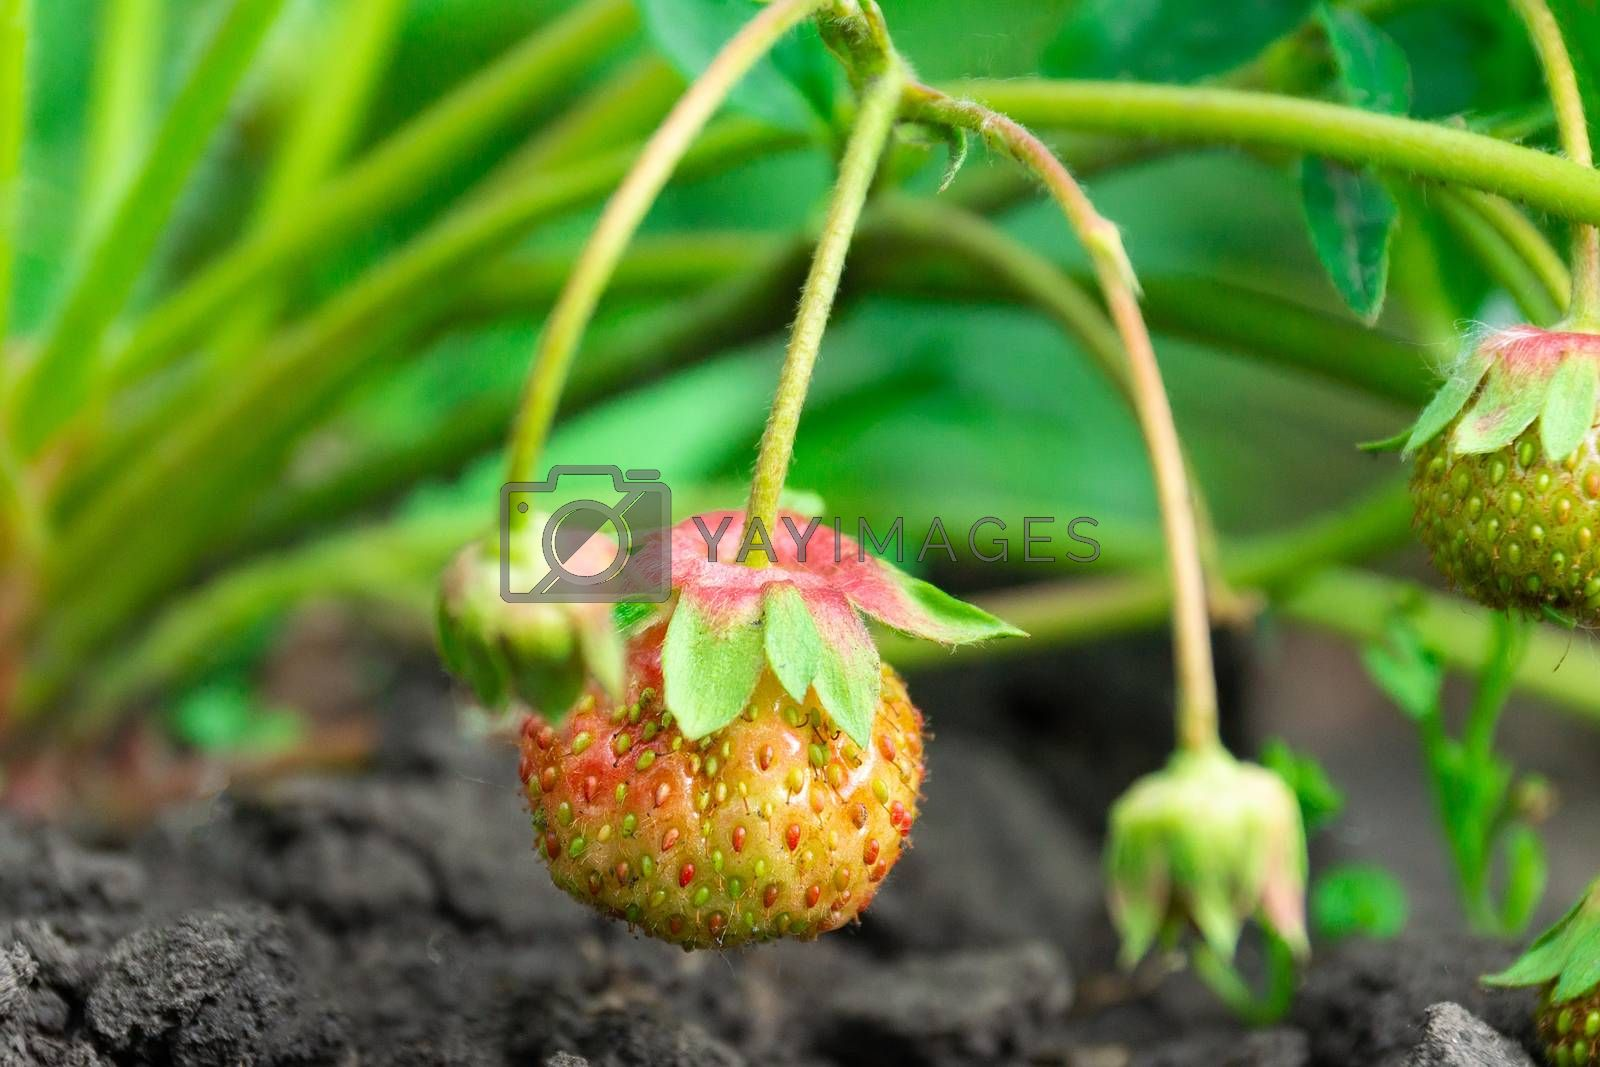 watering a strawberry bush on a vegetable garden from a watering can